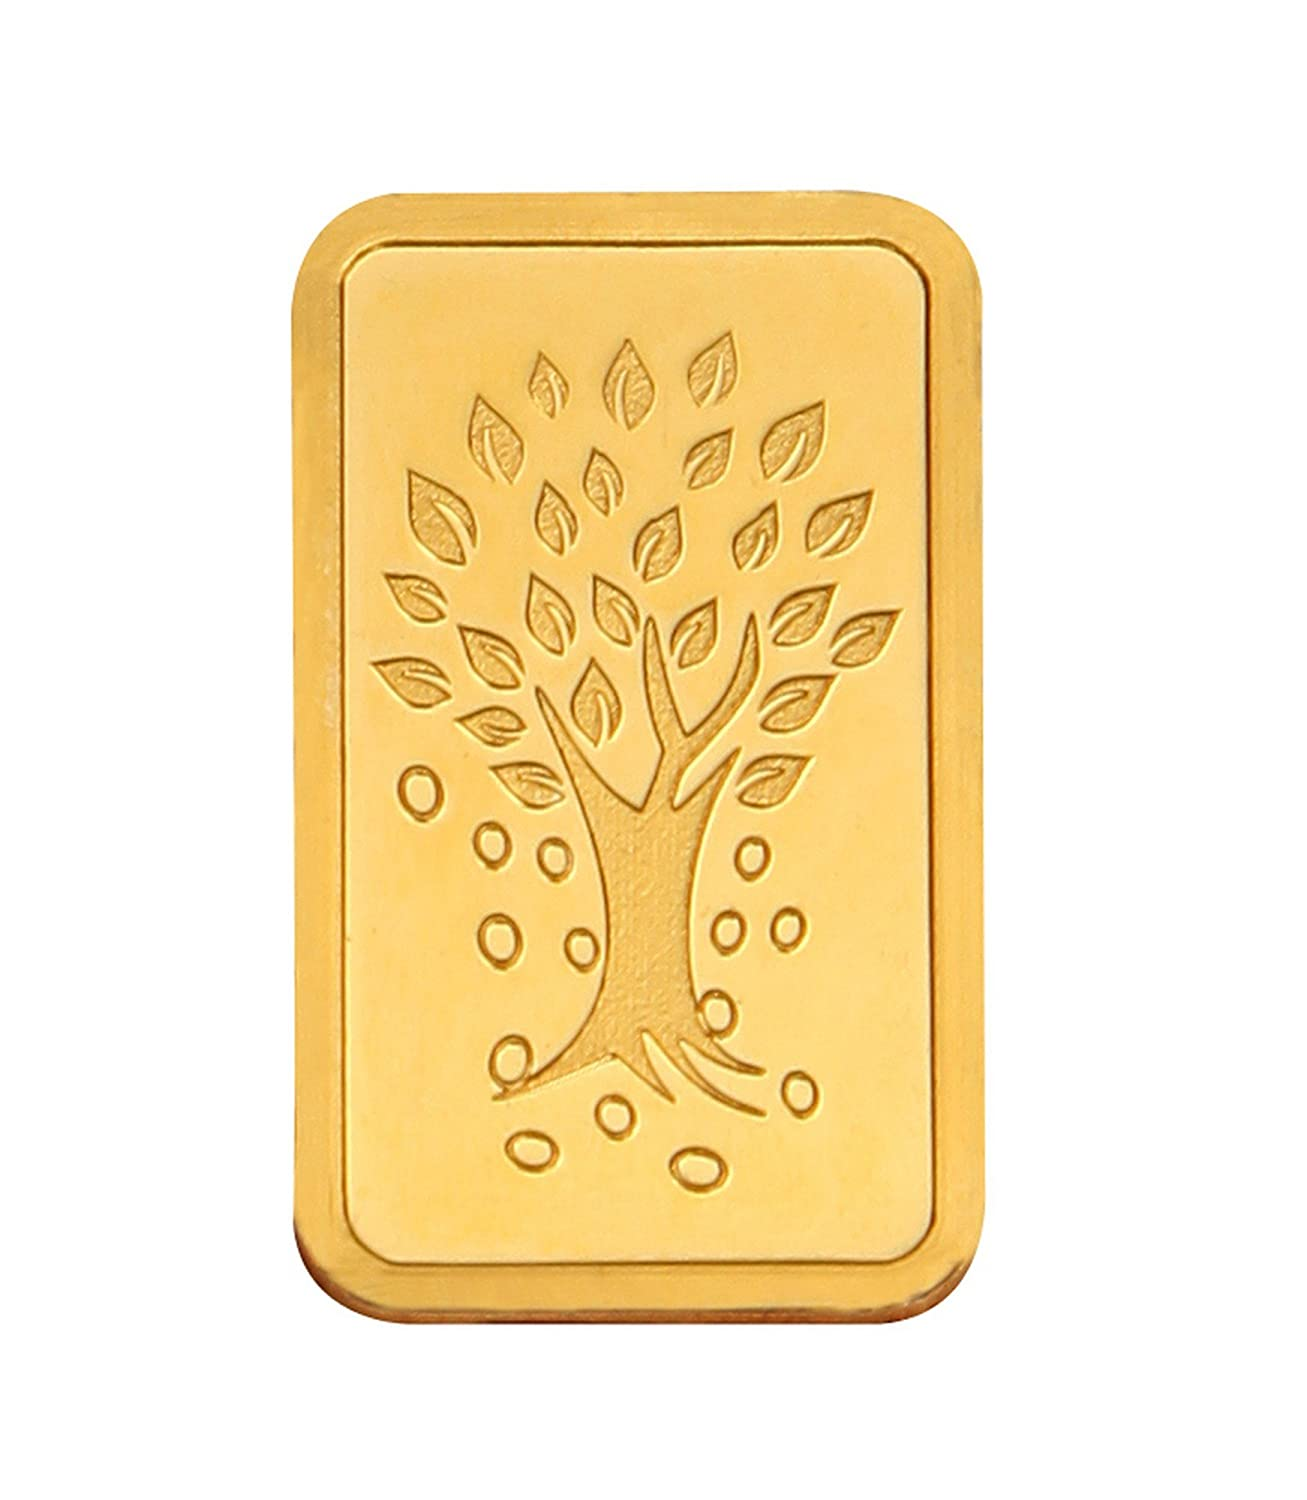 Kundan NABL Certified 20 gm, 24k(999.9) Yellow Gold Kalpataru Tree Precious Coin